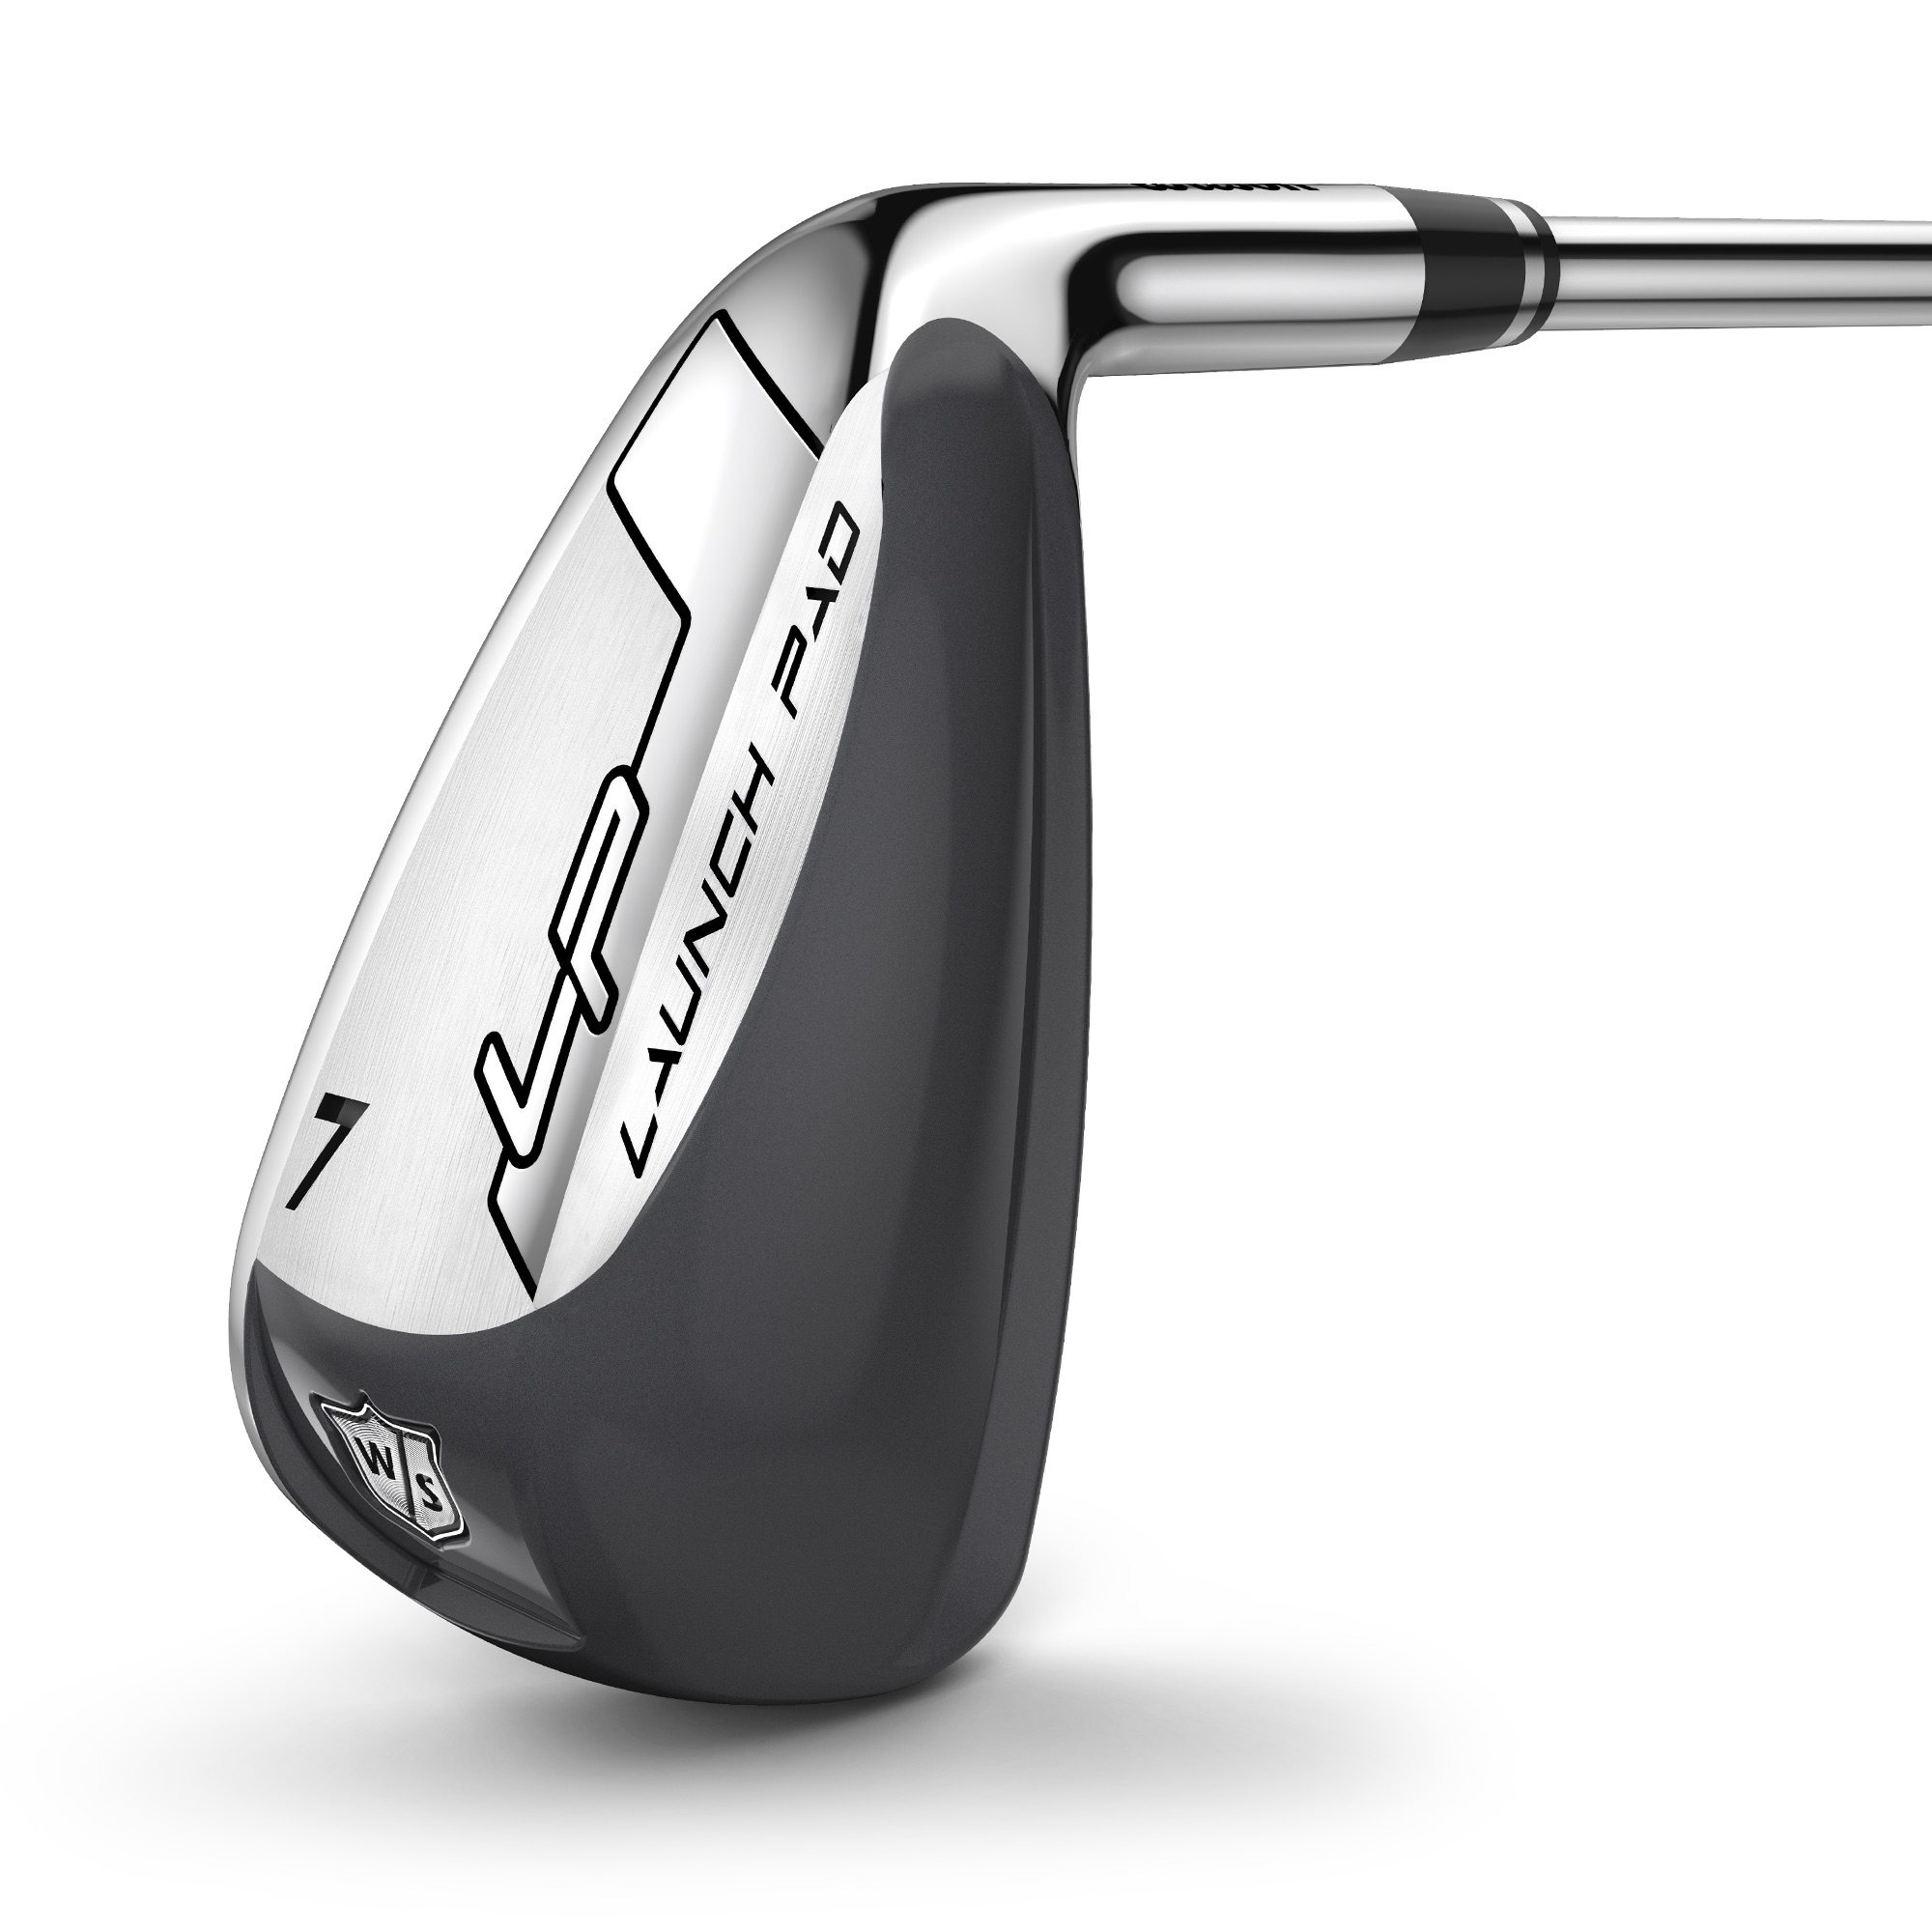 Wilson Launch Pad Irons elevate the ball and your game